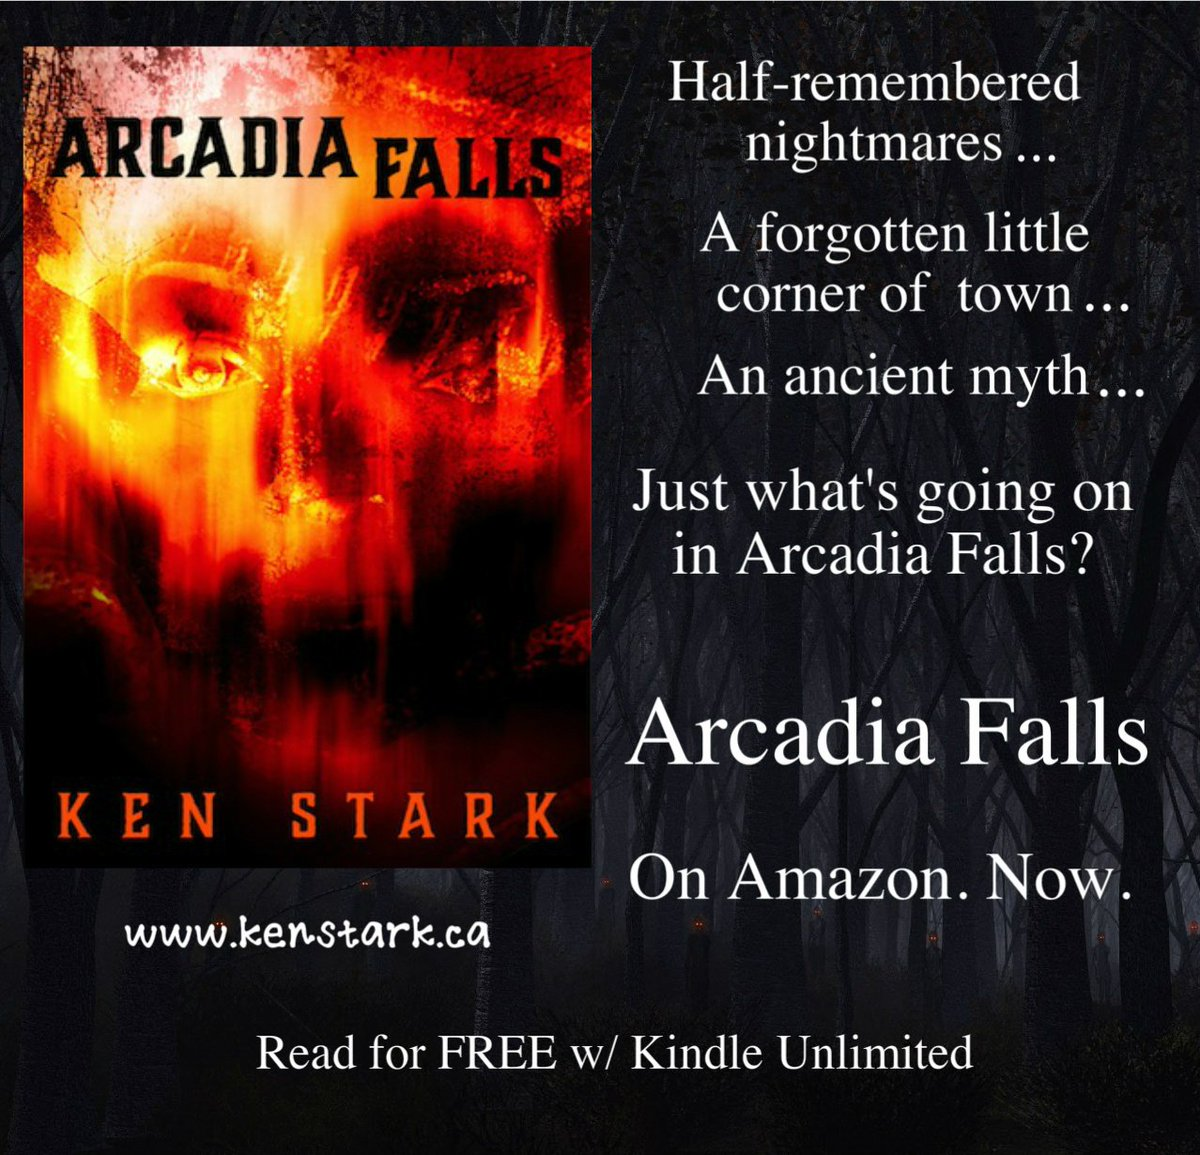 Maybe some things should just stay forgotten....  #horror #mystery #thriller #YABookPromo #new #indiebooks  #ArcadiaFalls #FREE w/ #KindleUnlimited   https://www. amazon.com/dp/B077VVQVL4/ ref=la_B01D911QC2 &nbsp; …  …<br>http://pic.twitter.com/UhFI6uwnGz